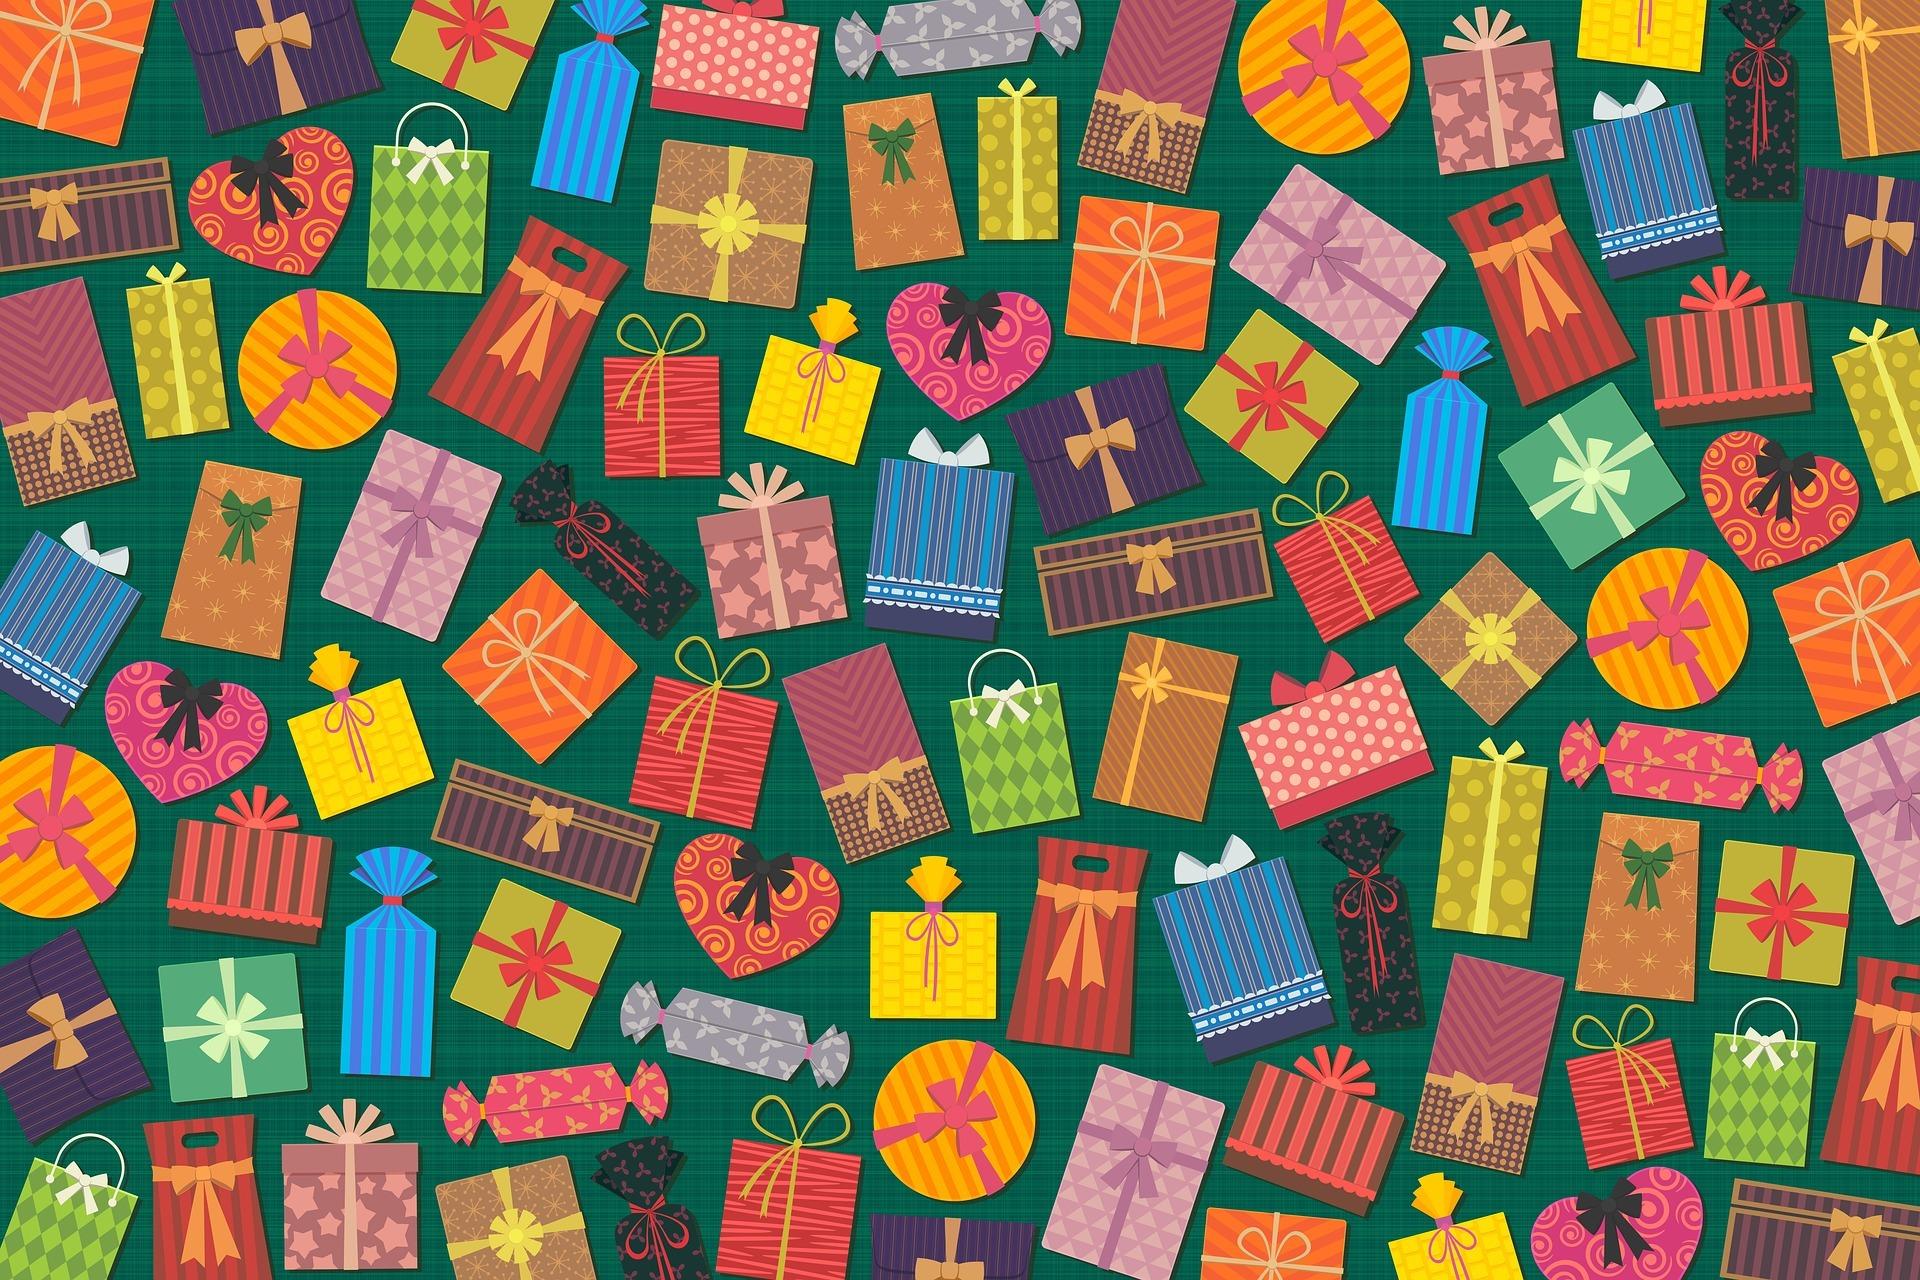 Gift Taxes Explained - Are They Really Tax Free?